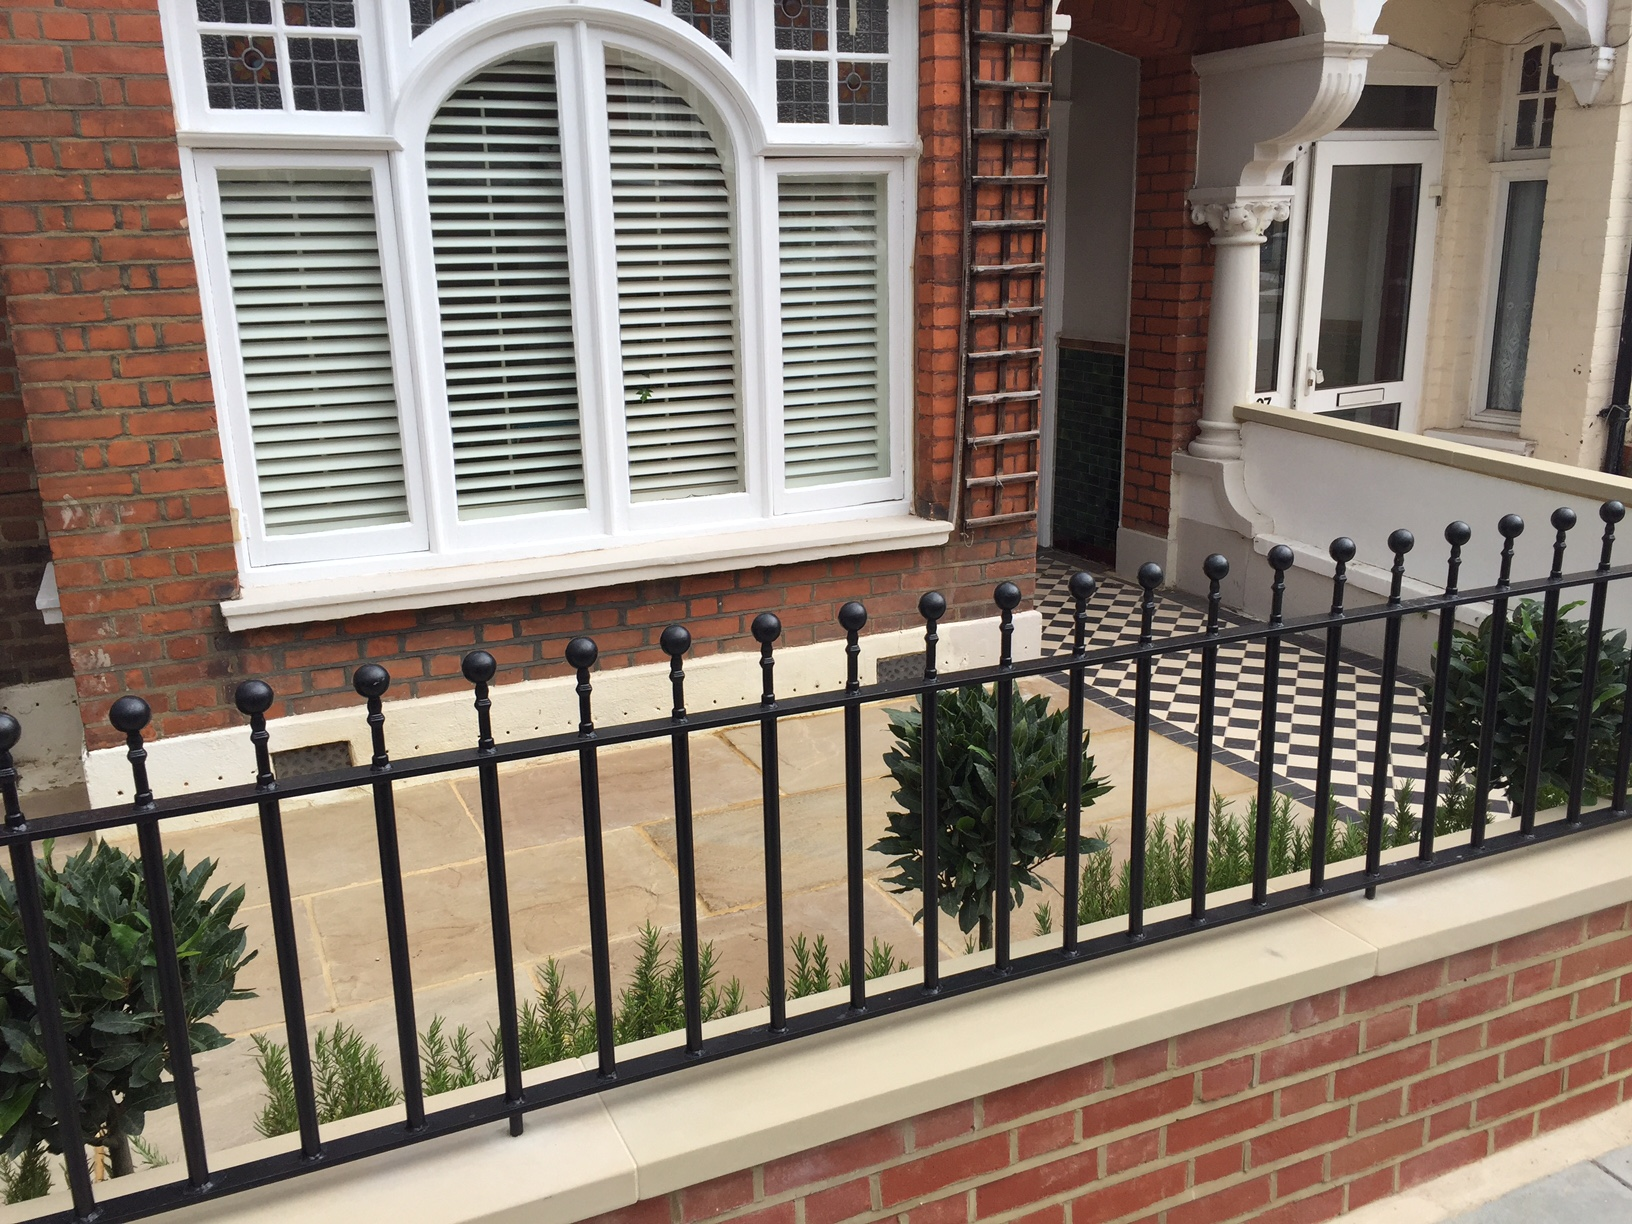 ... Front Garden Brick Red Wall Metal Gate Rails Planting Balham Clapham  Wandsworth Earsfield London ...